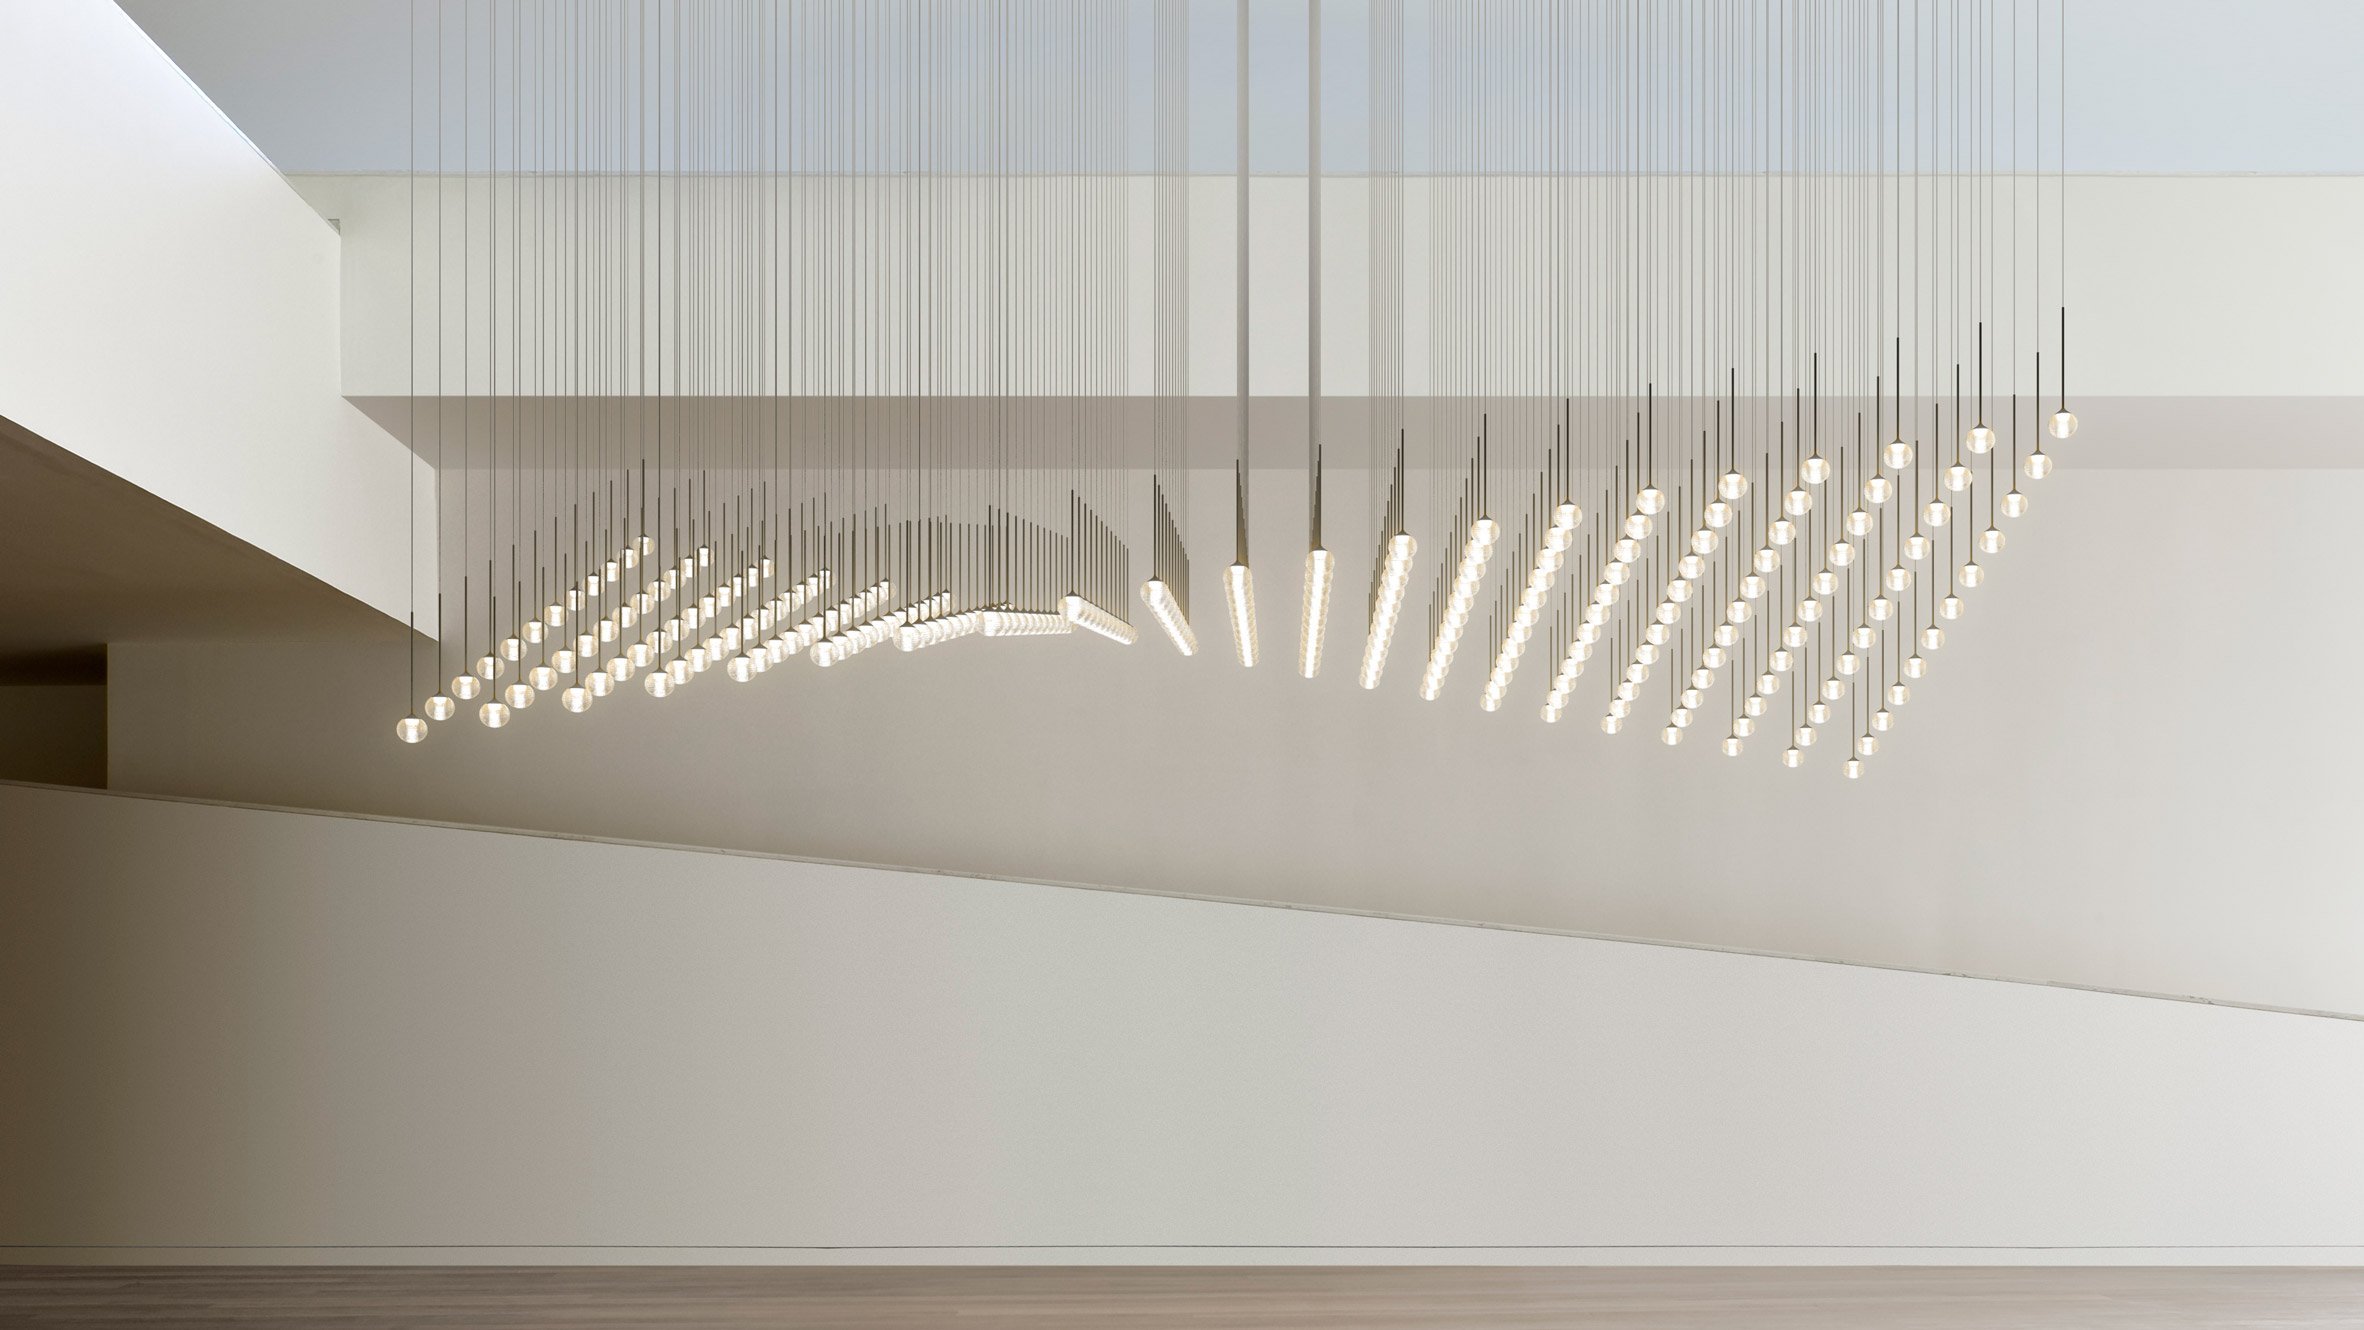 vibia launches customisable lighting system made up of glass spheres -